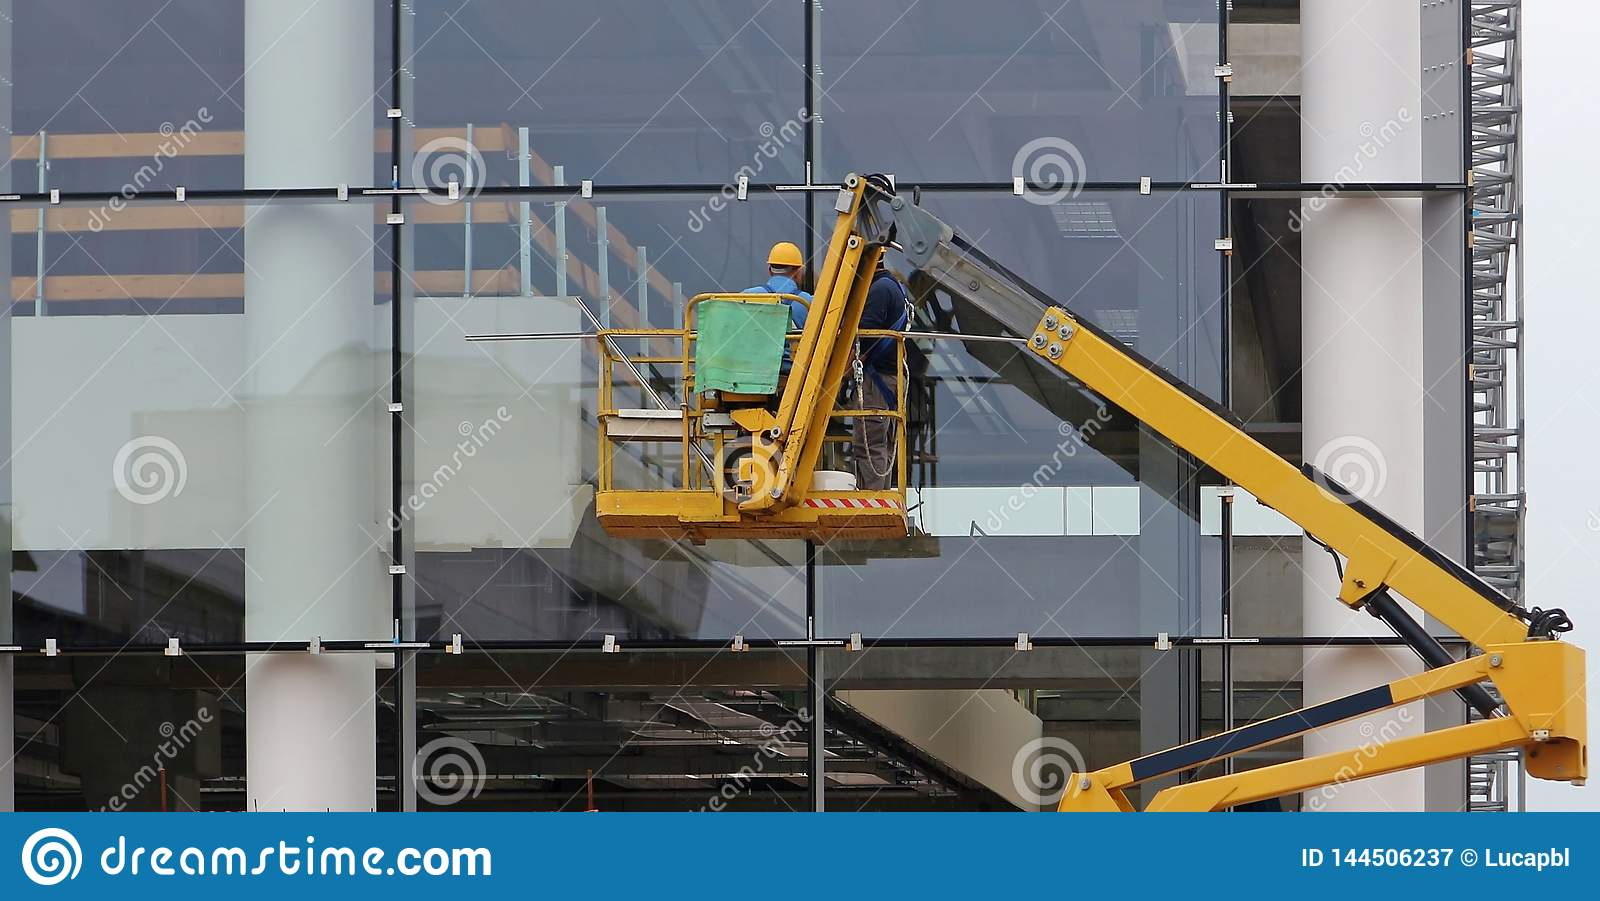 Workers on a cherry picker. They are finishing the glass facade of a building under renovation